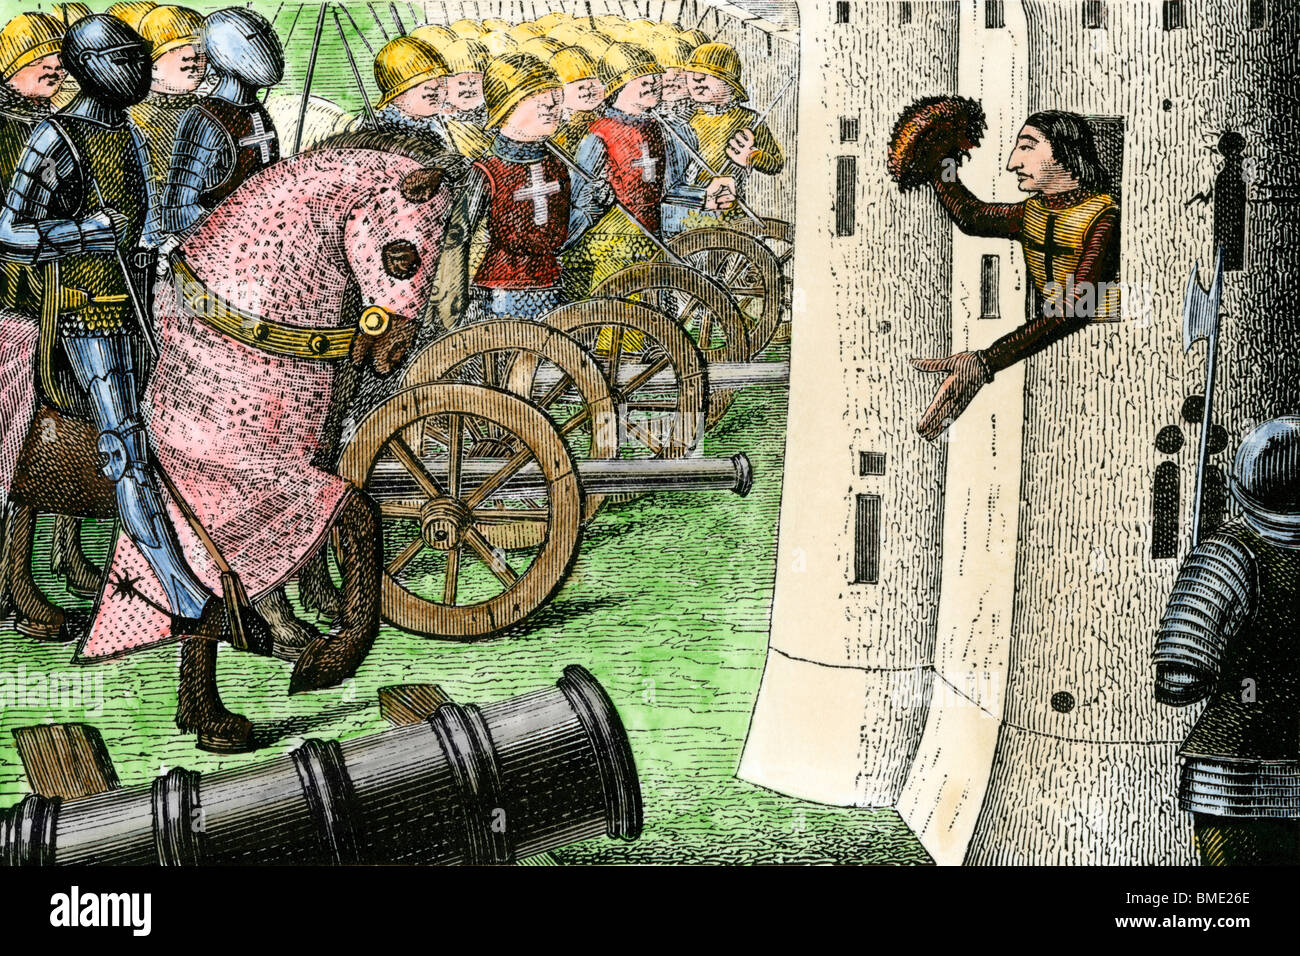 Capture of Alencon during the Hundred Years'  War, 1400s. Hand-colored woodcut - Stock Image